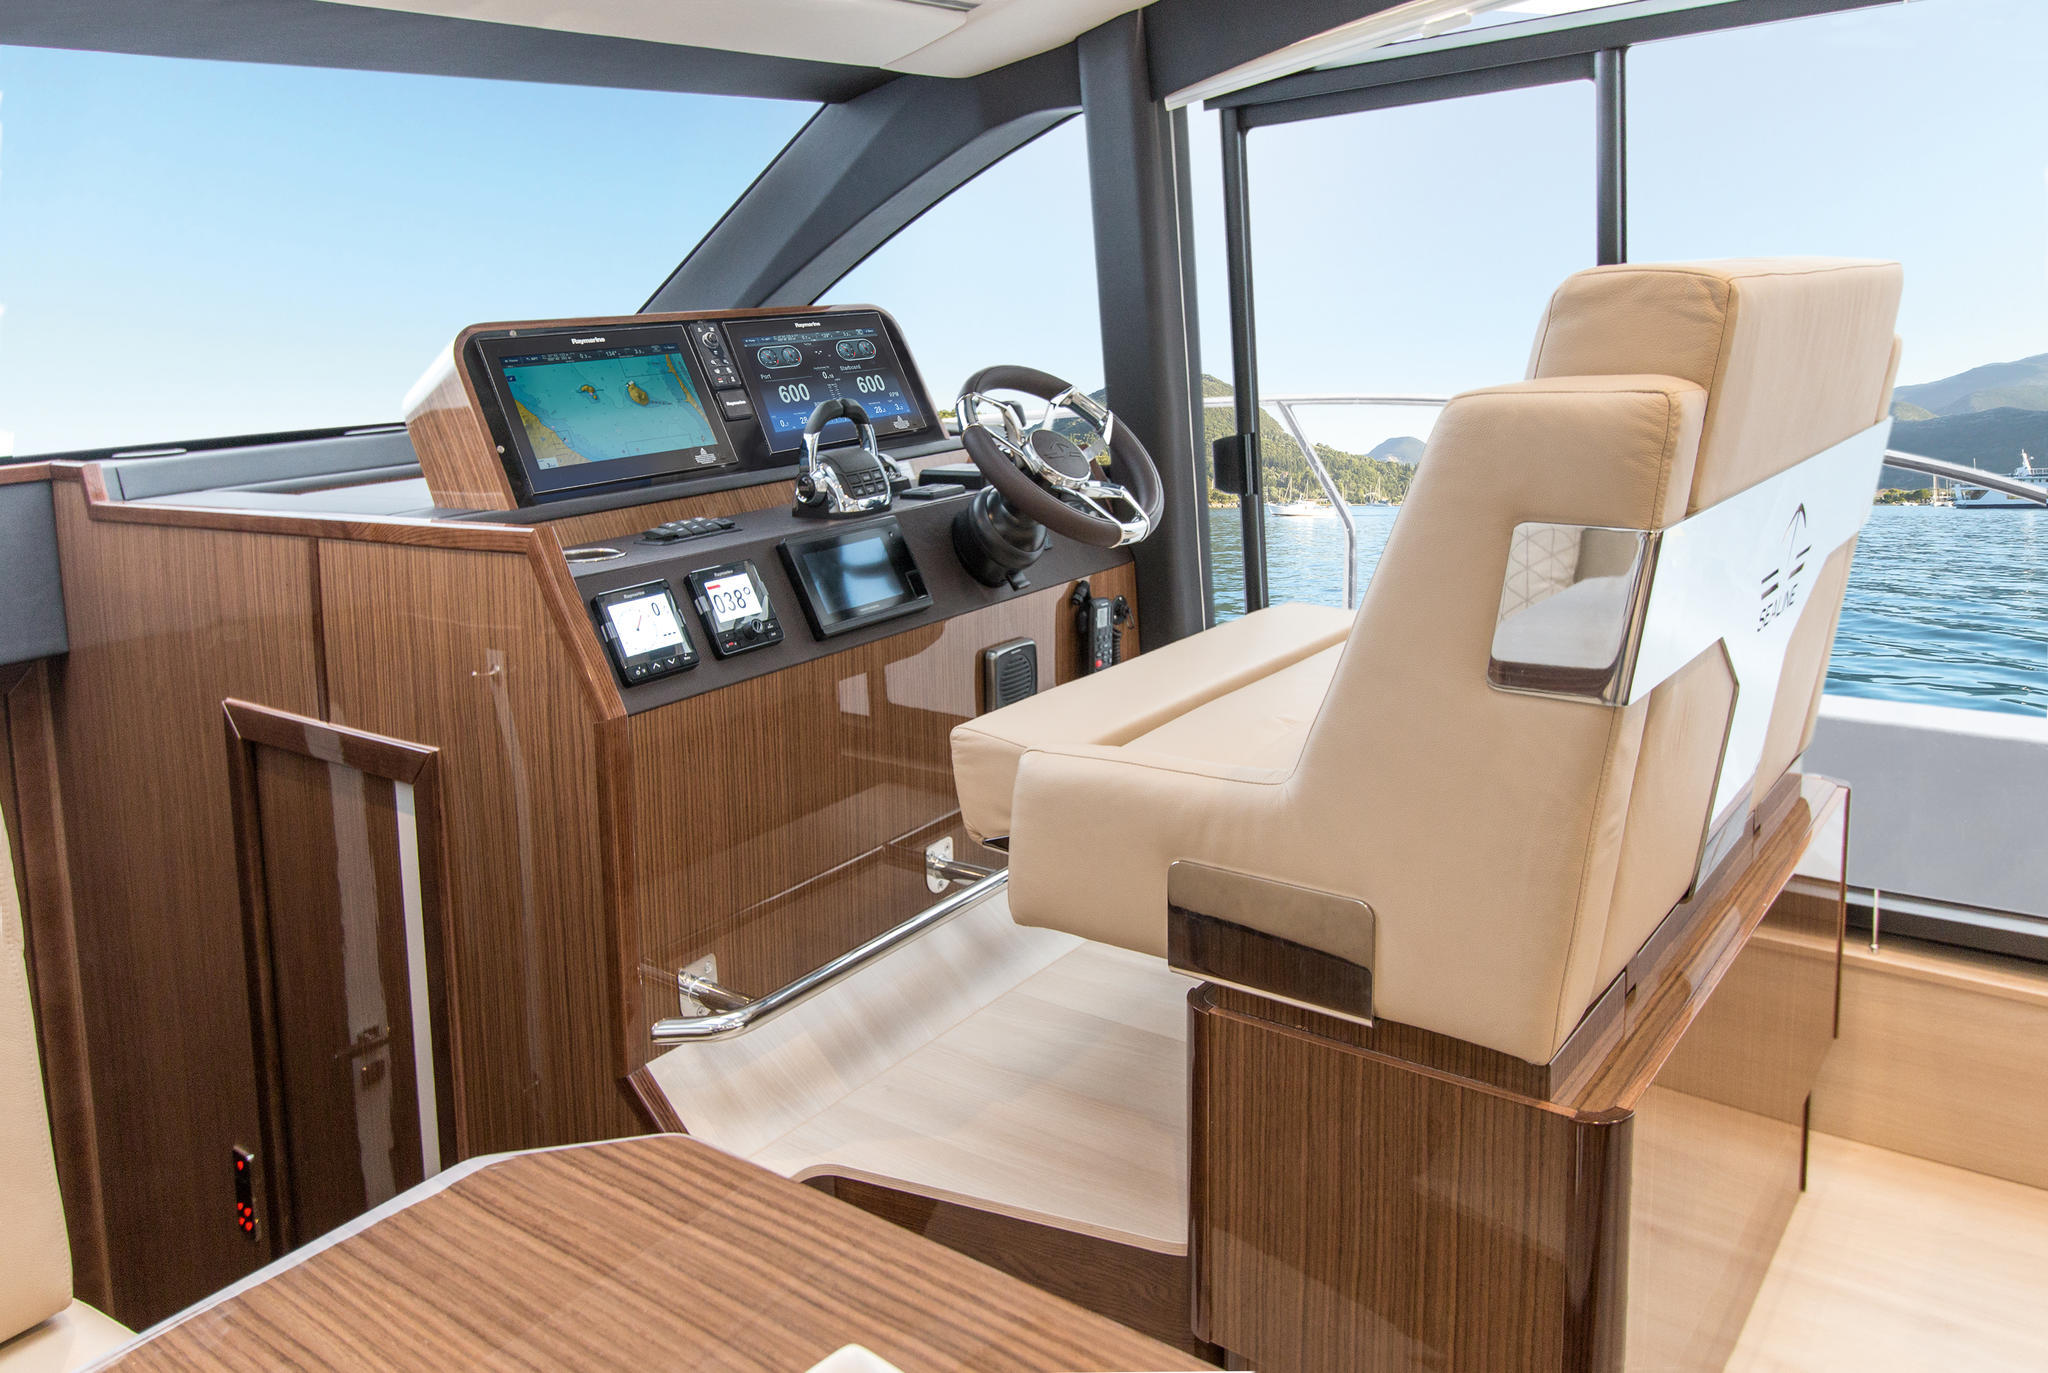 Sealine_C430_interior_webbild_171005_17